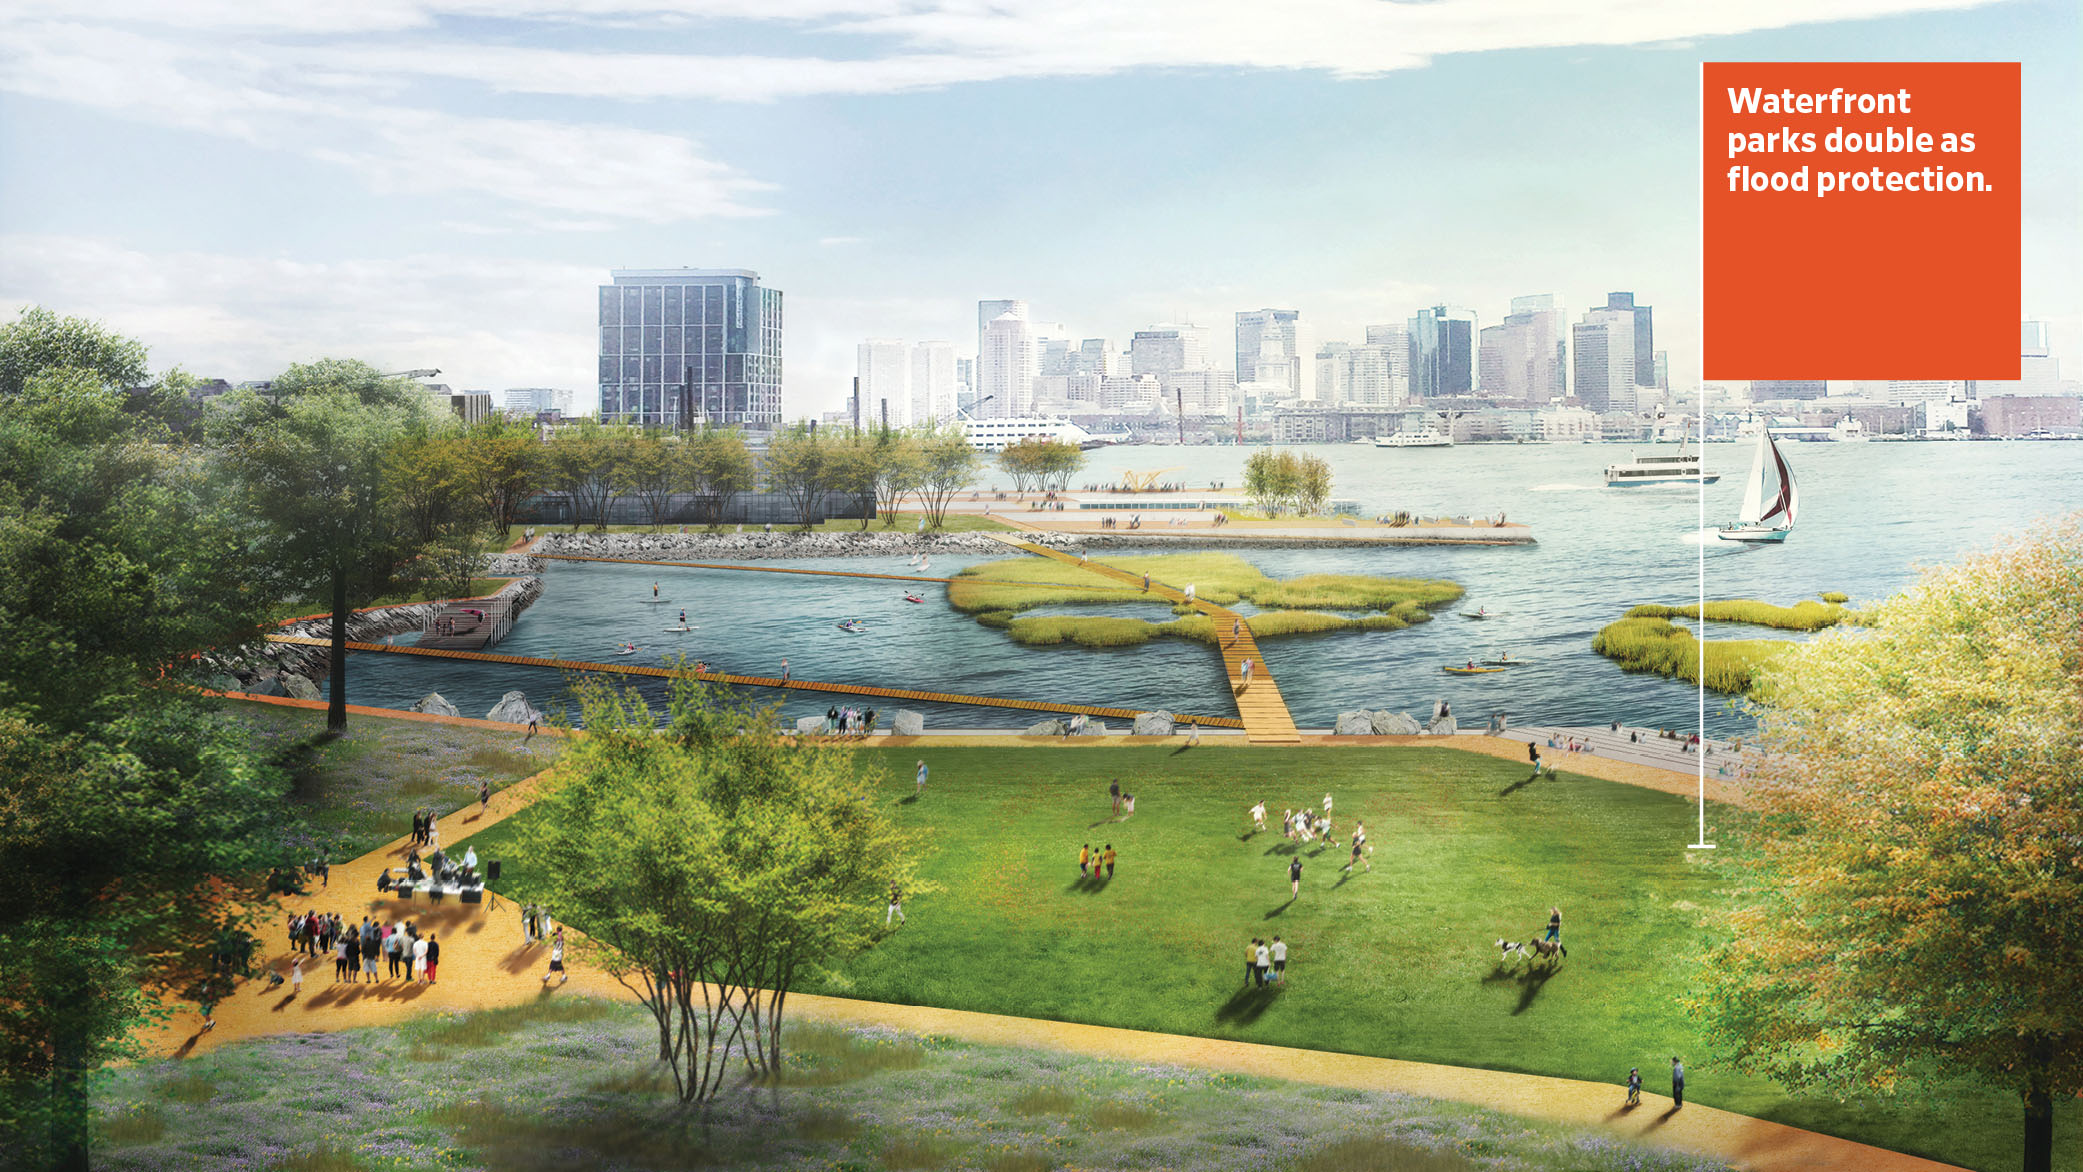 Concept for a new central park in East Boston designed to flood in storms, protecting inland homes, businesses, and critical infrastructure.